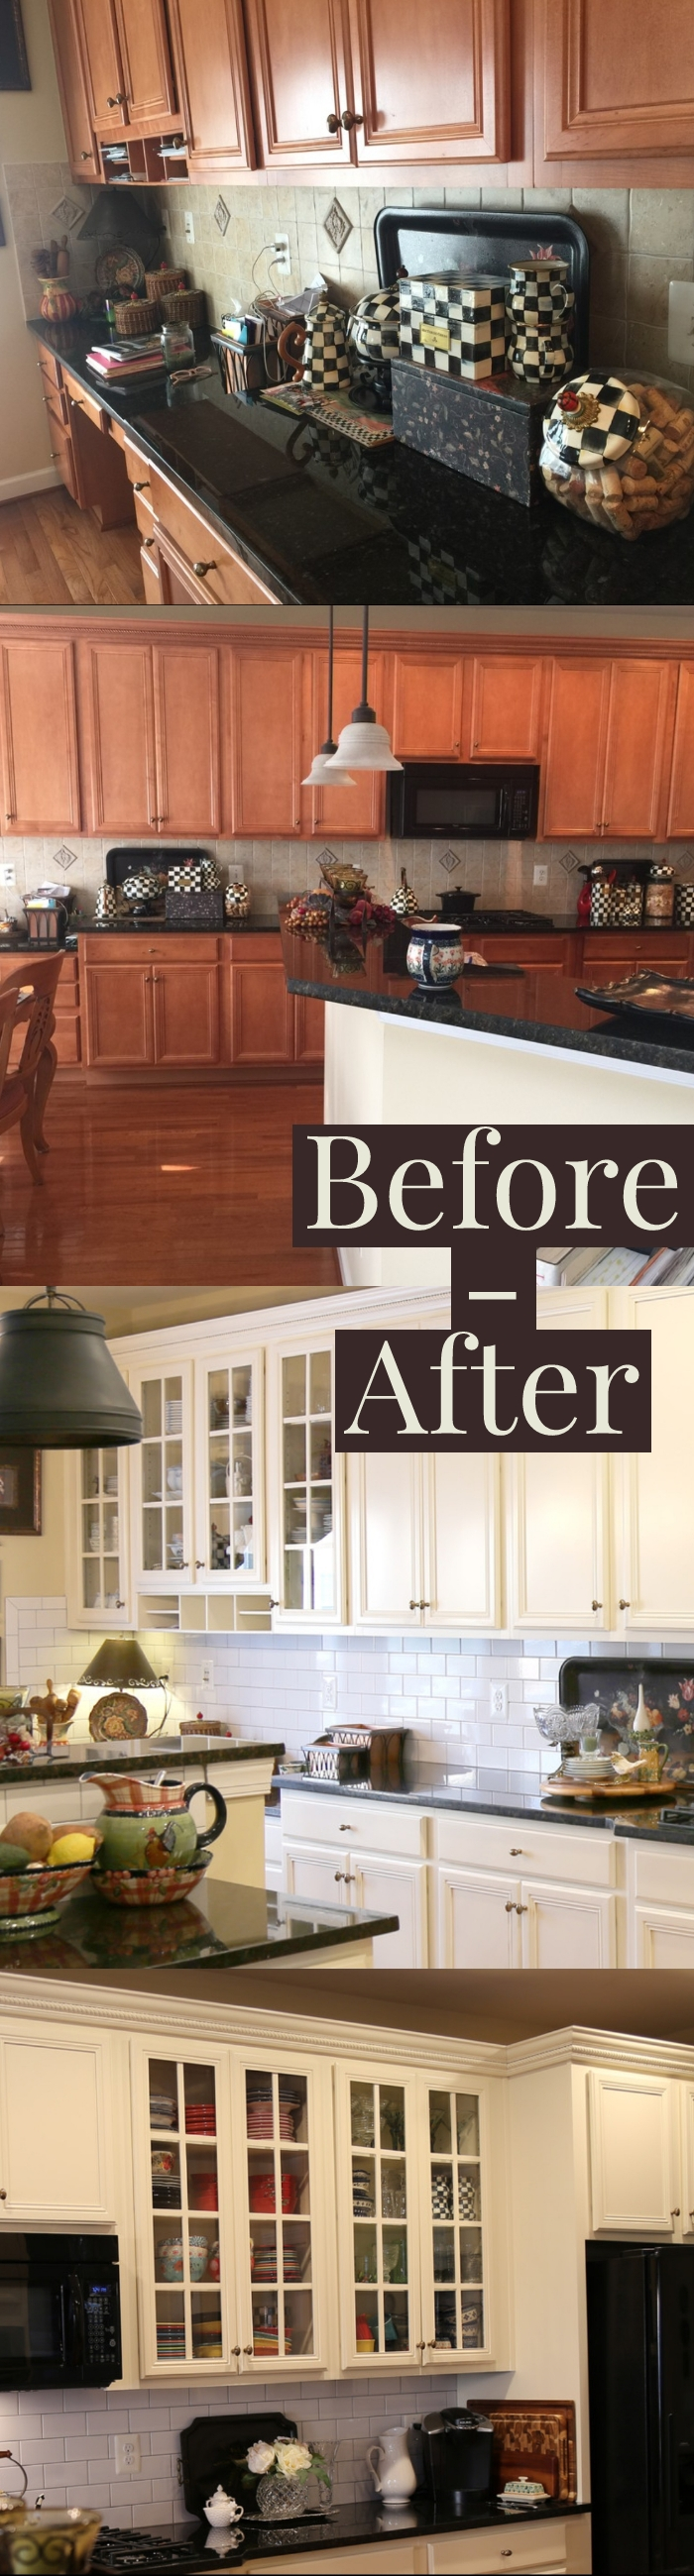 how to resurface kitchen cabinets yourself